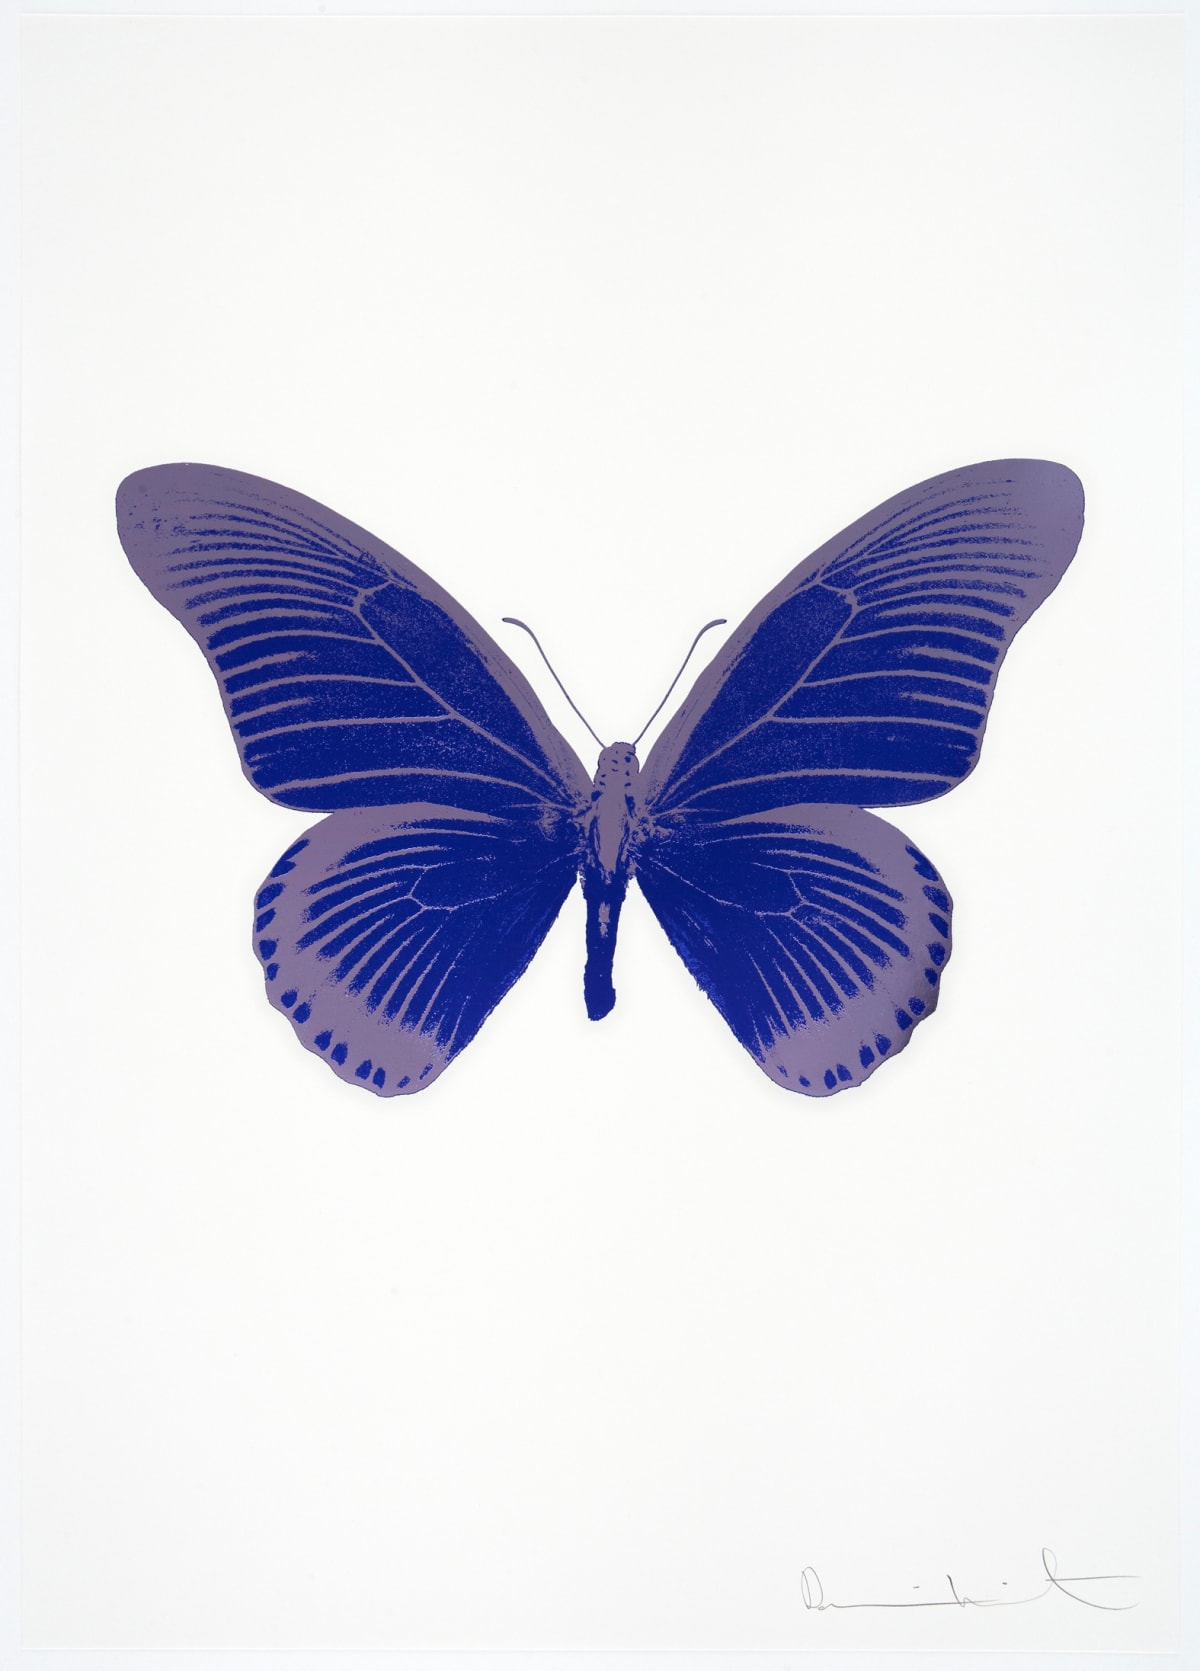 Damien Hirst The Souls IV - Westminster Blue/Aquarius, 2010 3 colour foil block on 300gsm Arches 88 archival paper. Signed and numbered. Published by Paul Stolper and Other Criteria 72 x 51cm OC7985 /1418-8 Edition of 15